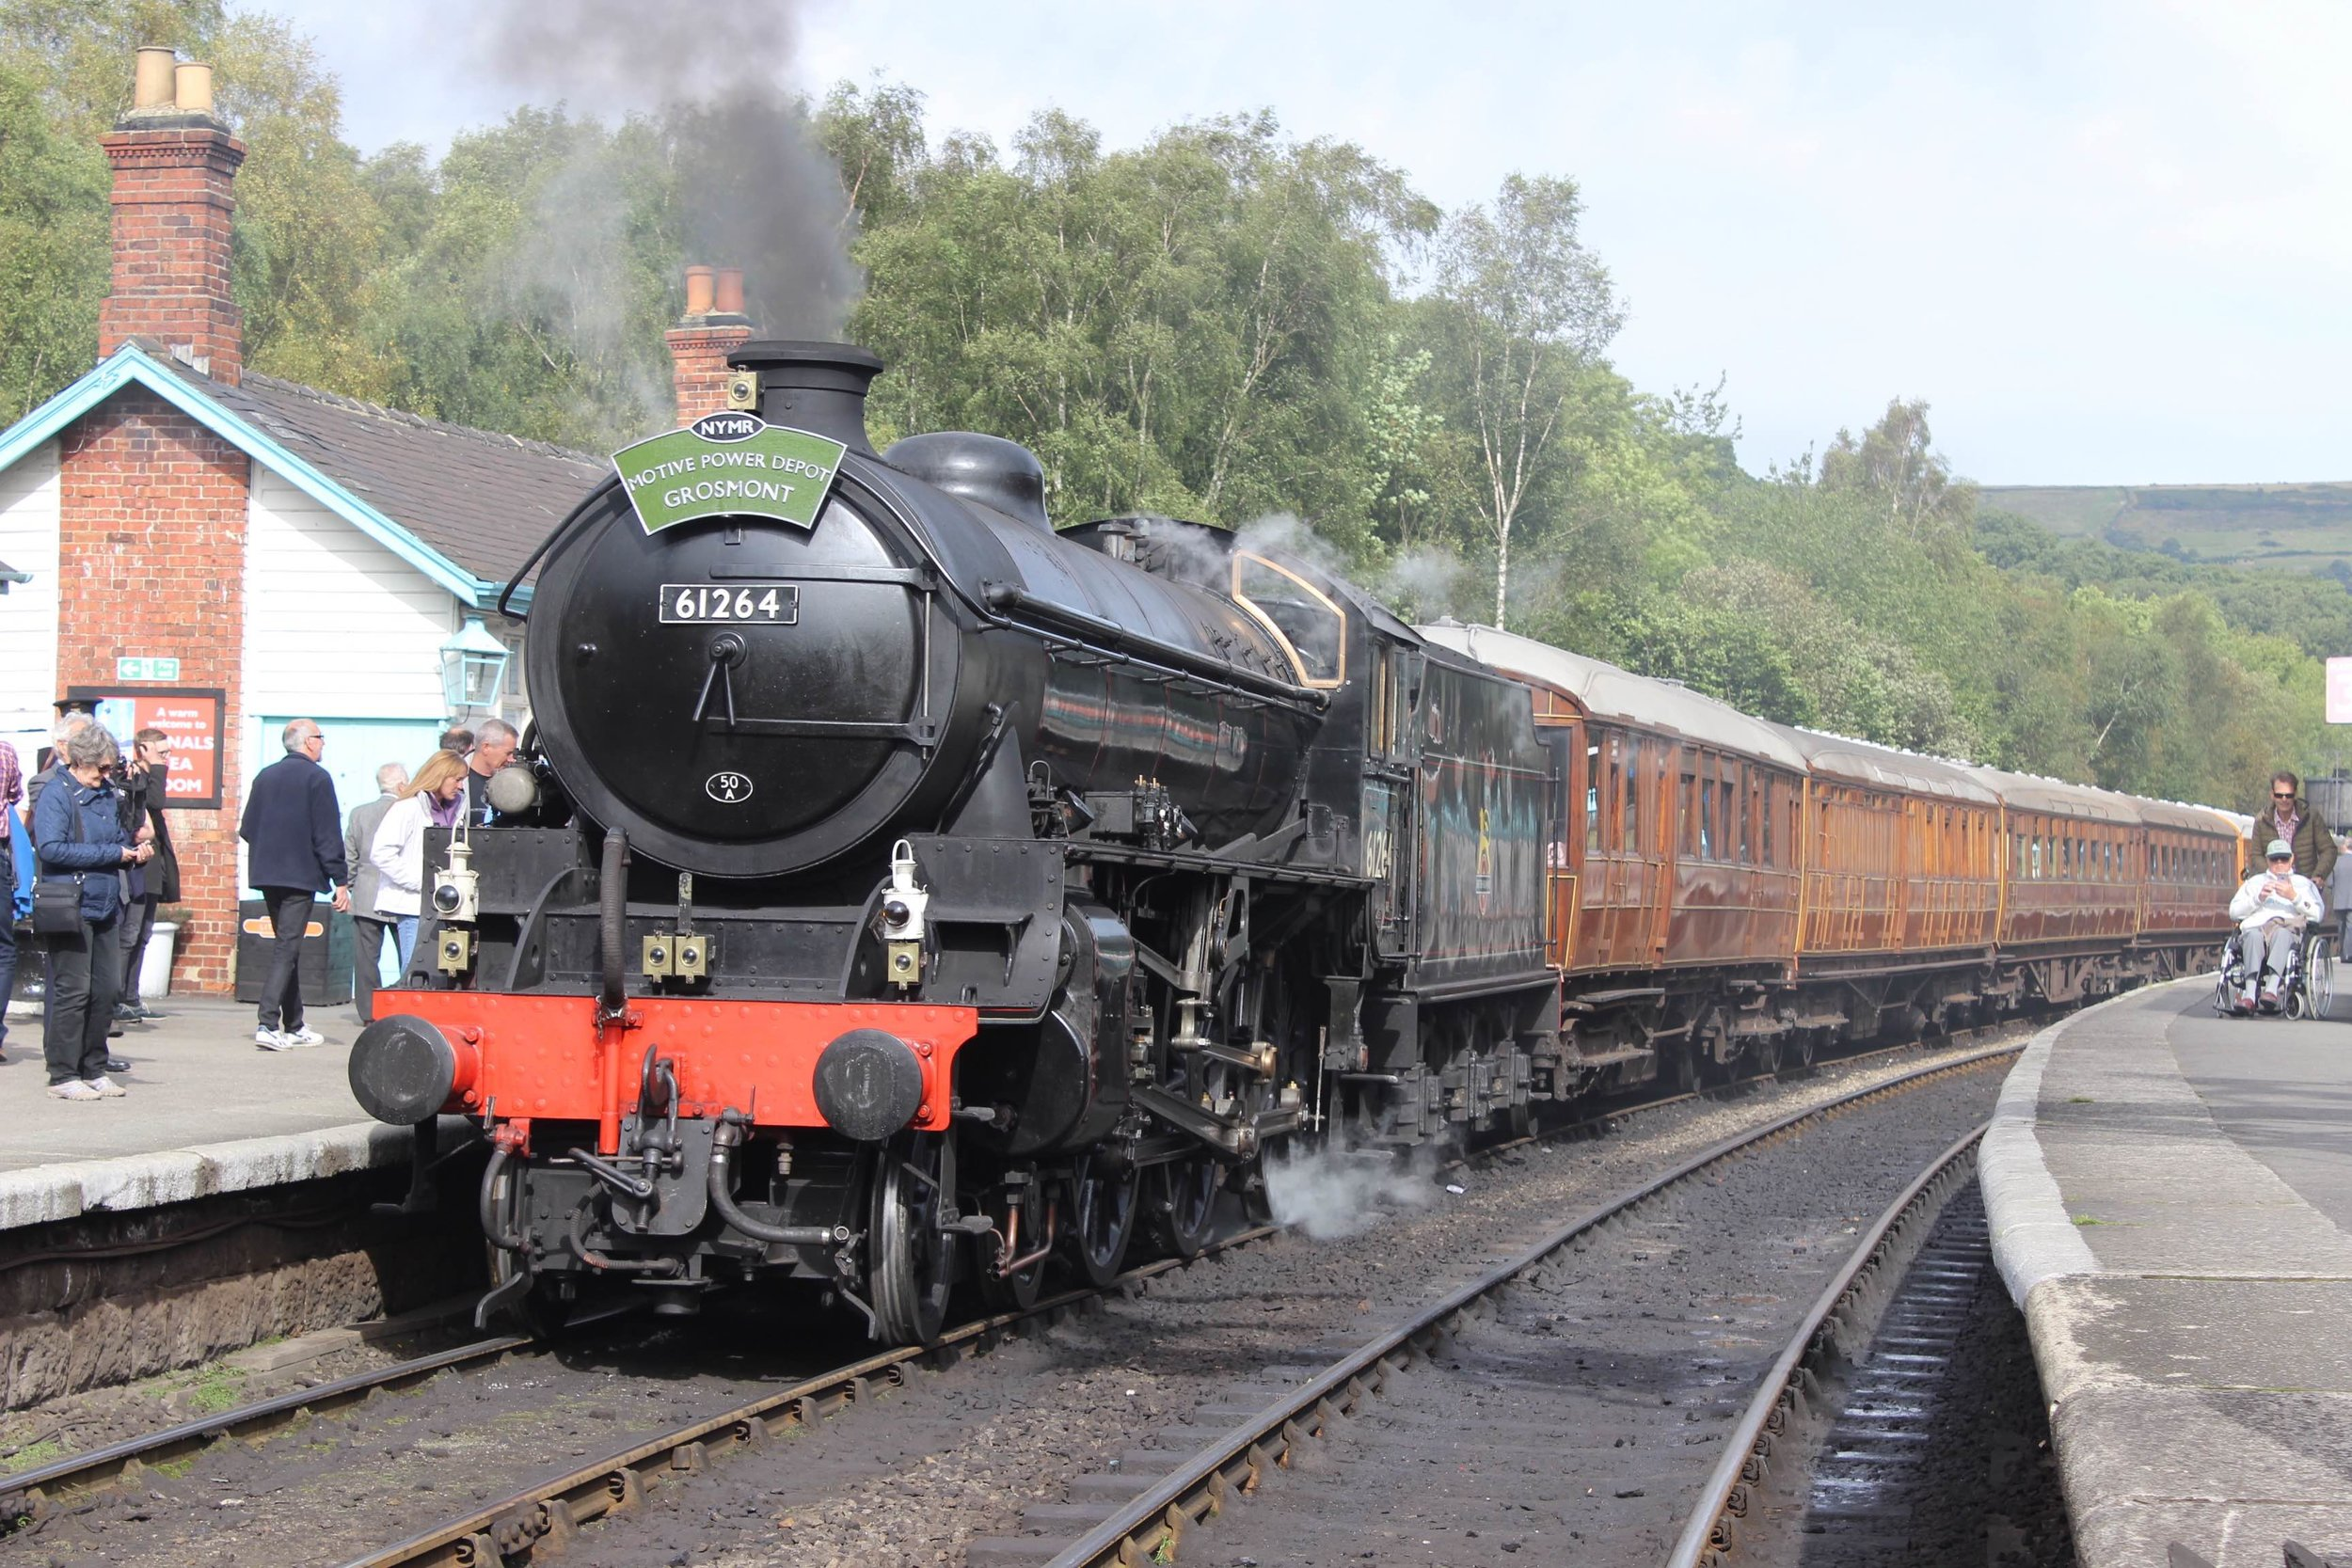 NYMR-based 'B1' No. 61264 prepares to leave Grosmont with the line's much-loved teak set in tow on September 24 2016, the day Thompson Third Corridor No. 1623 was launched into traffic. THOMAS BRIGHT/SR